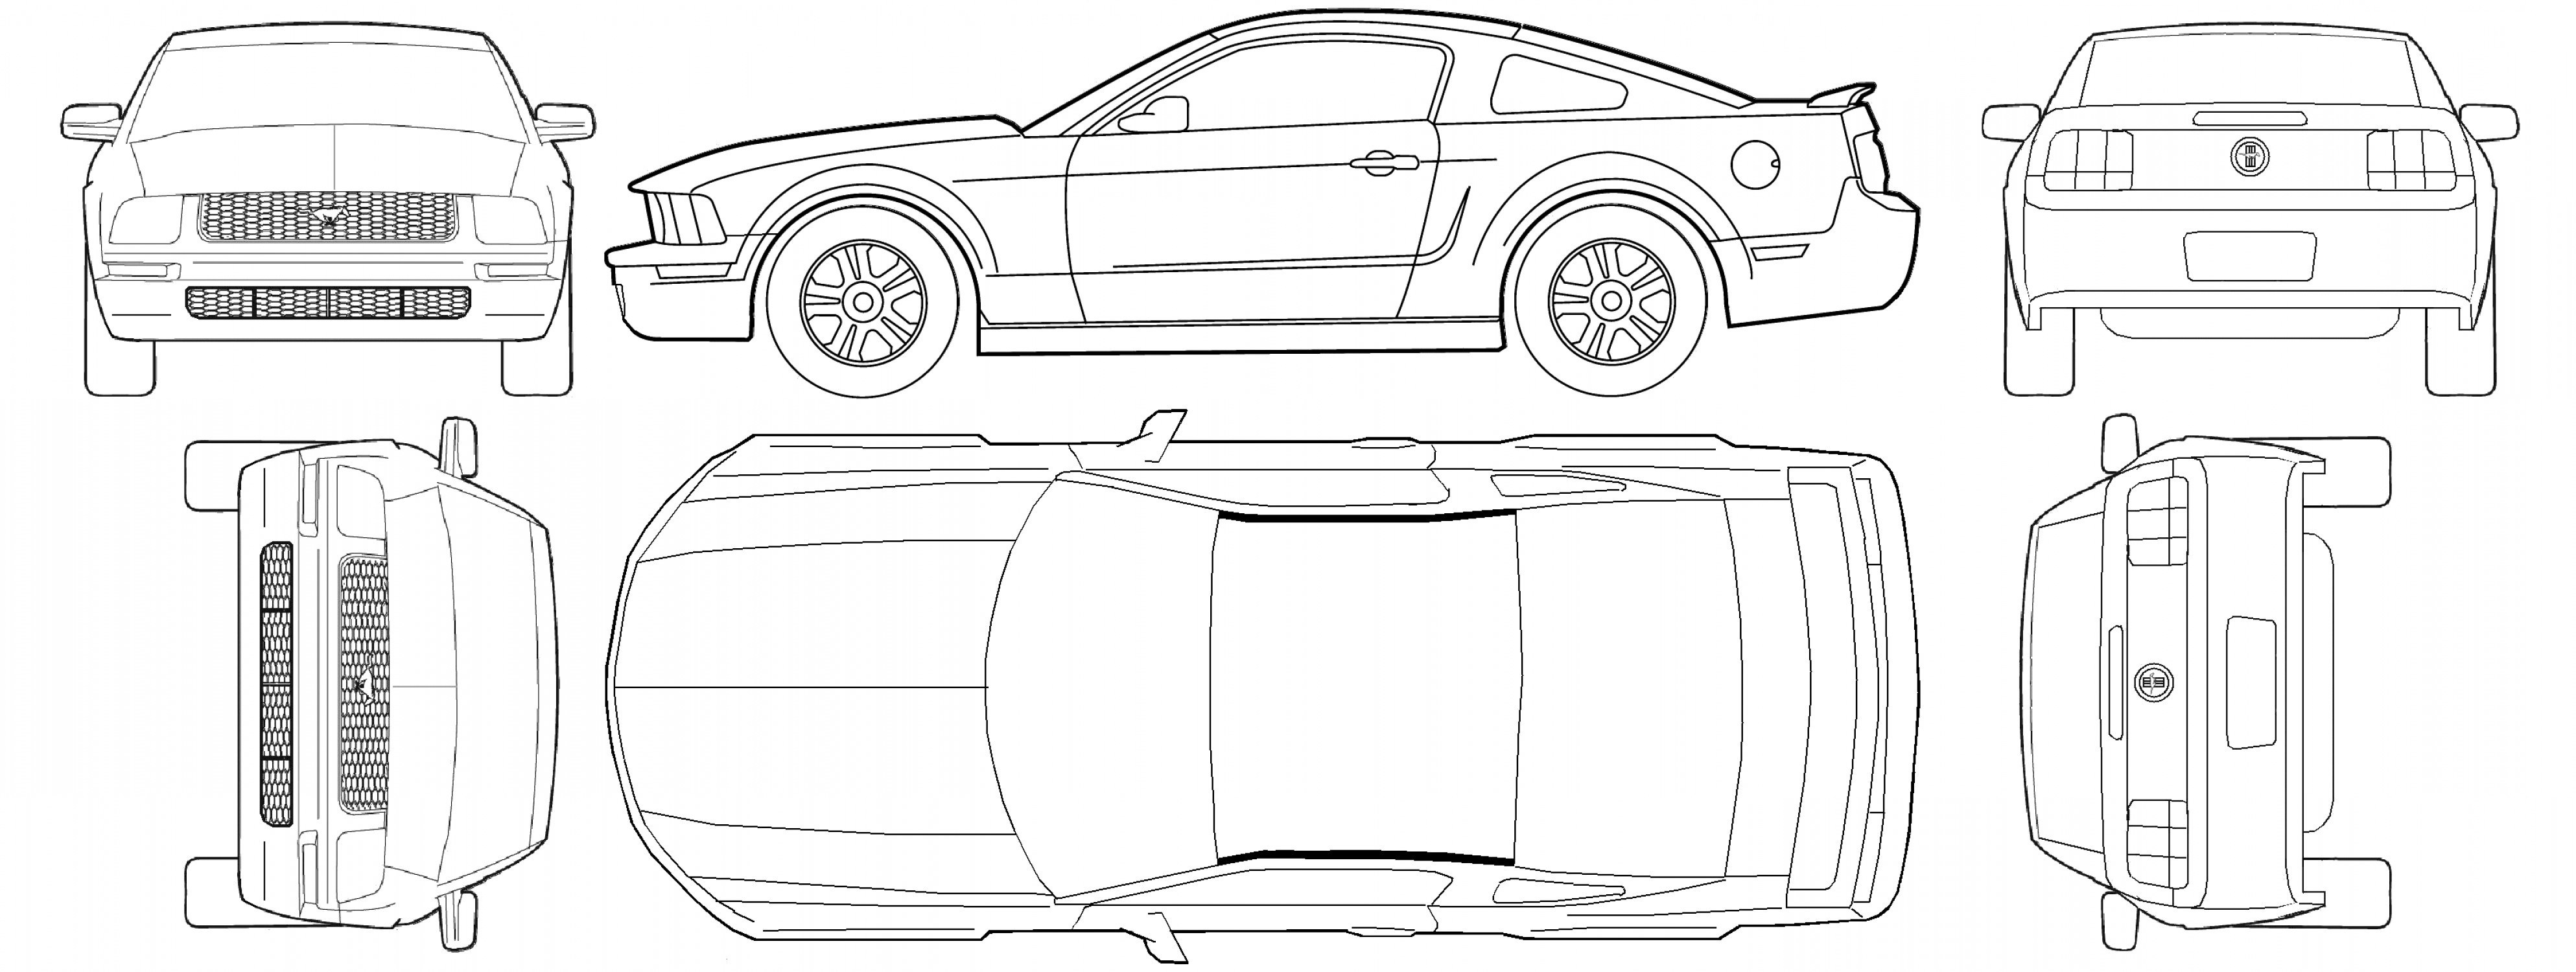 2005       Ford       Mustang       Gt    Drawing Vector   CreateMePink